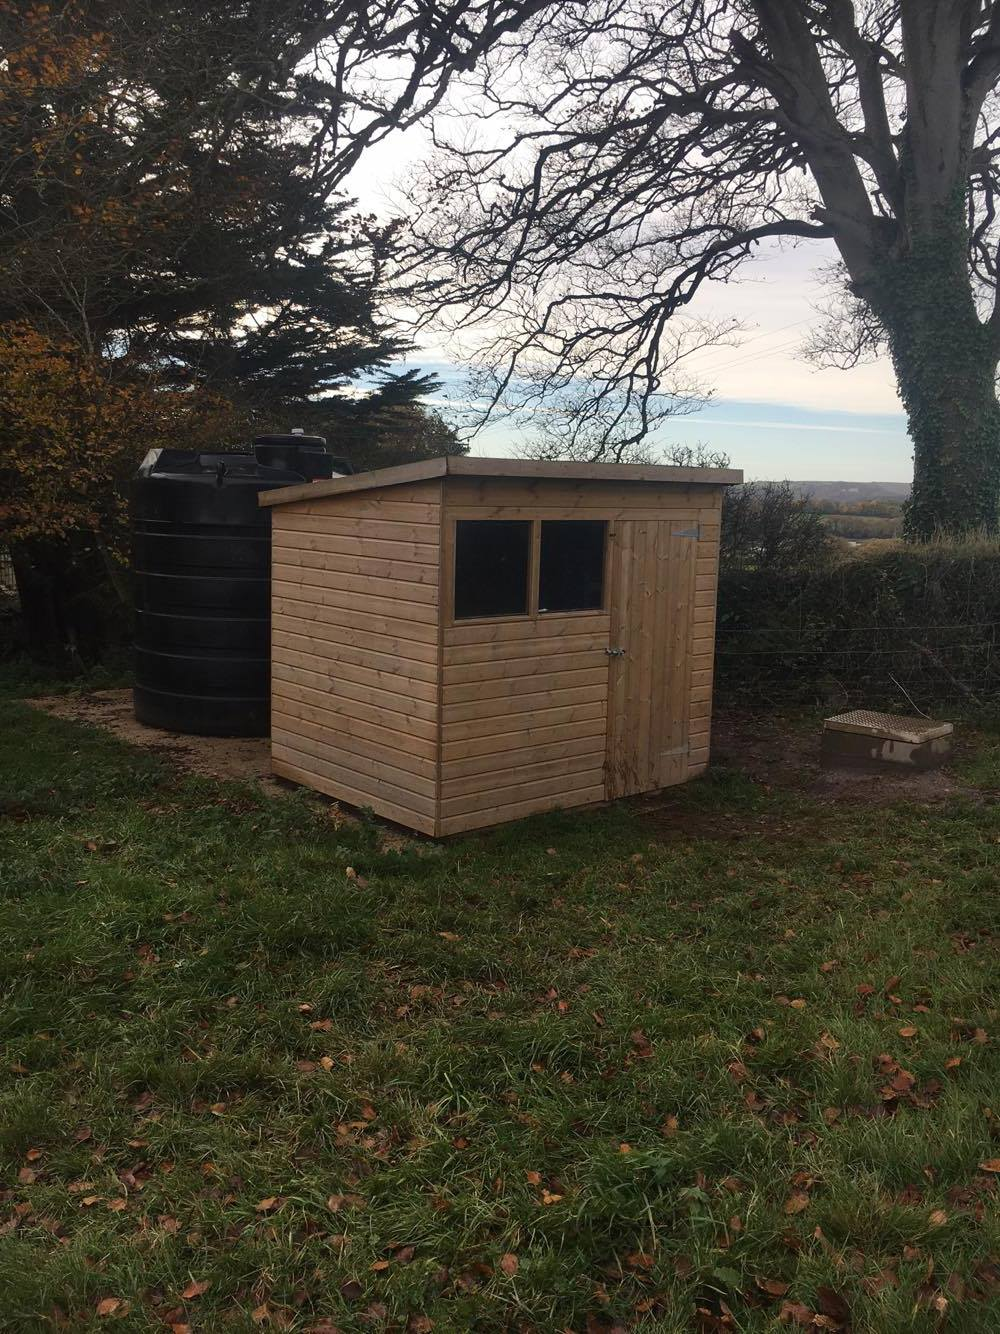 Installed in Garden Shed